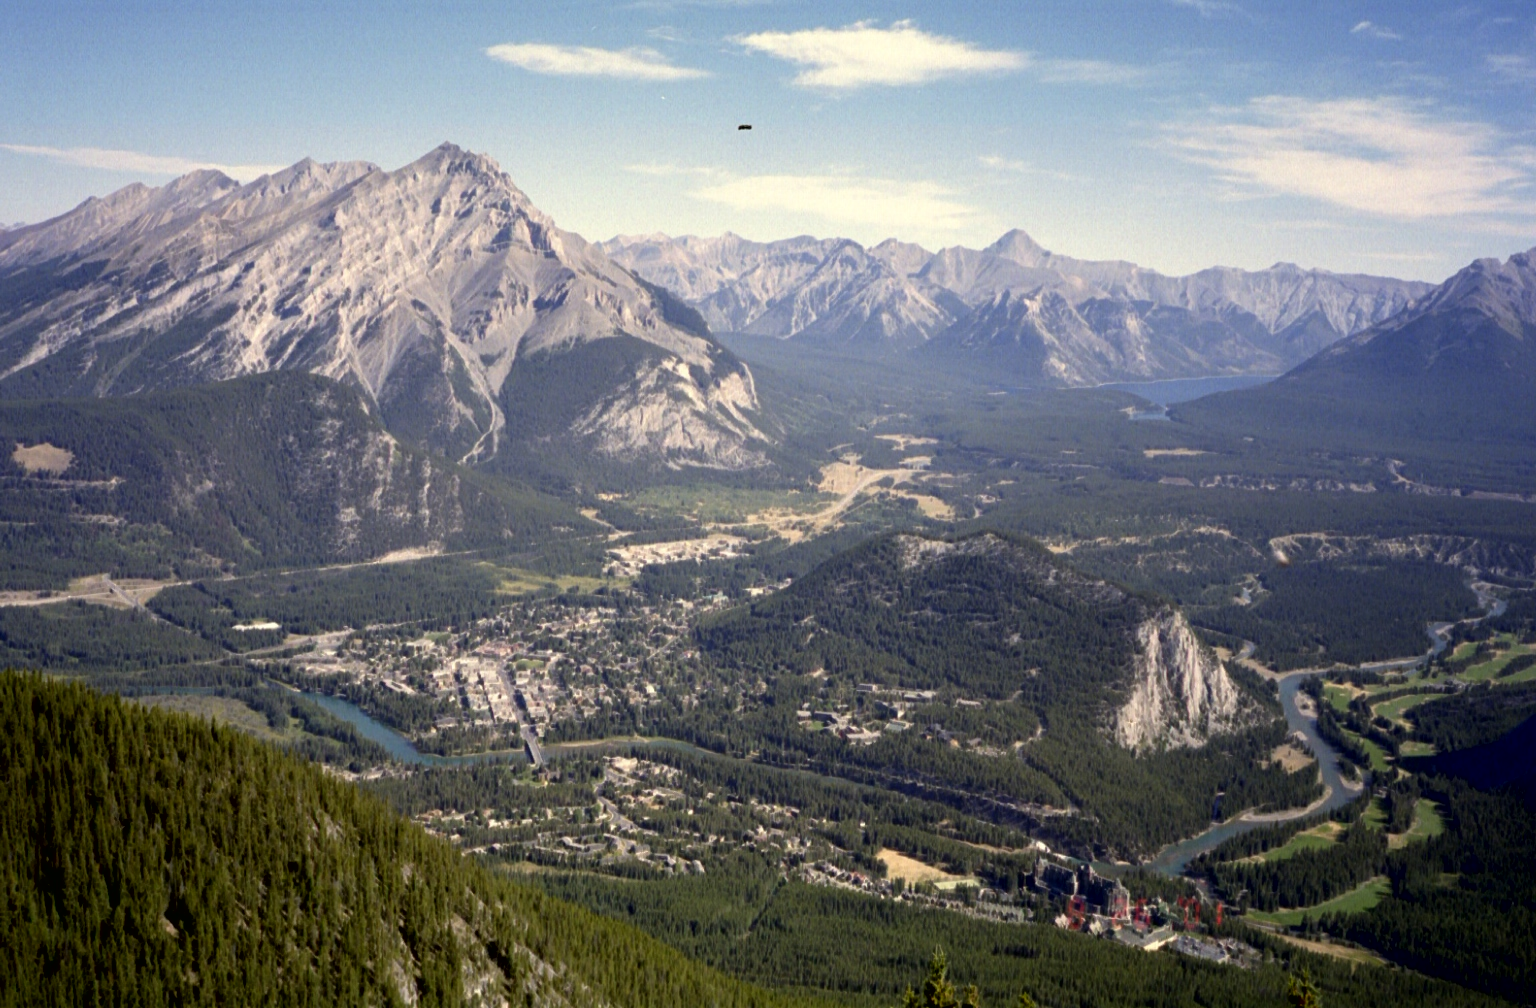 View of Banff from the Tram Platform